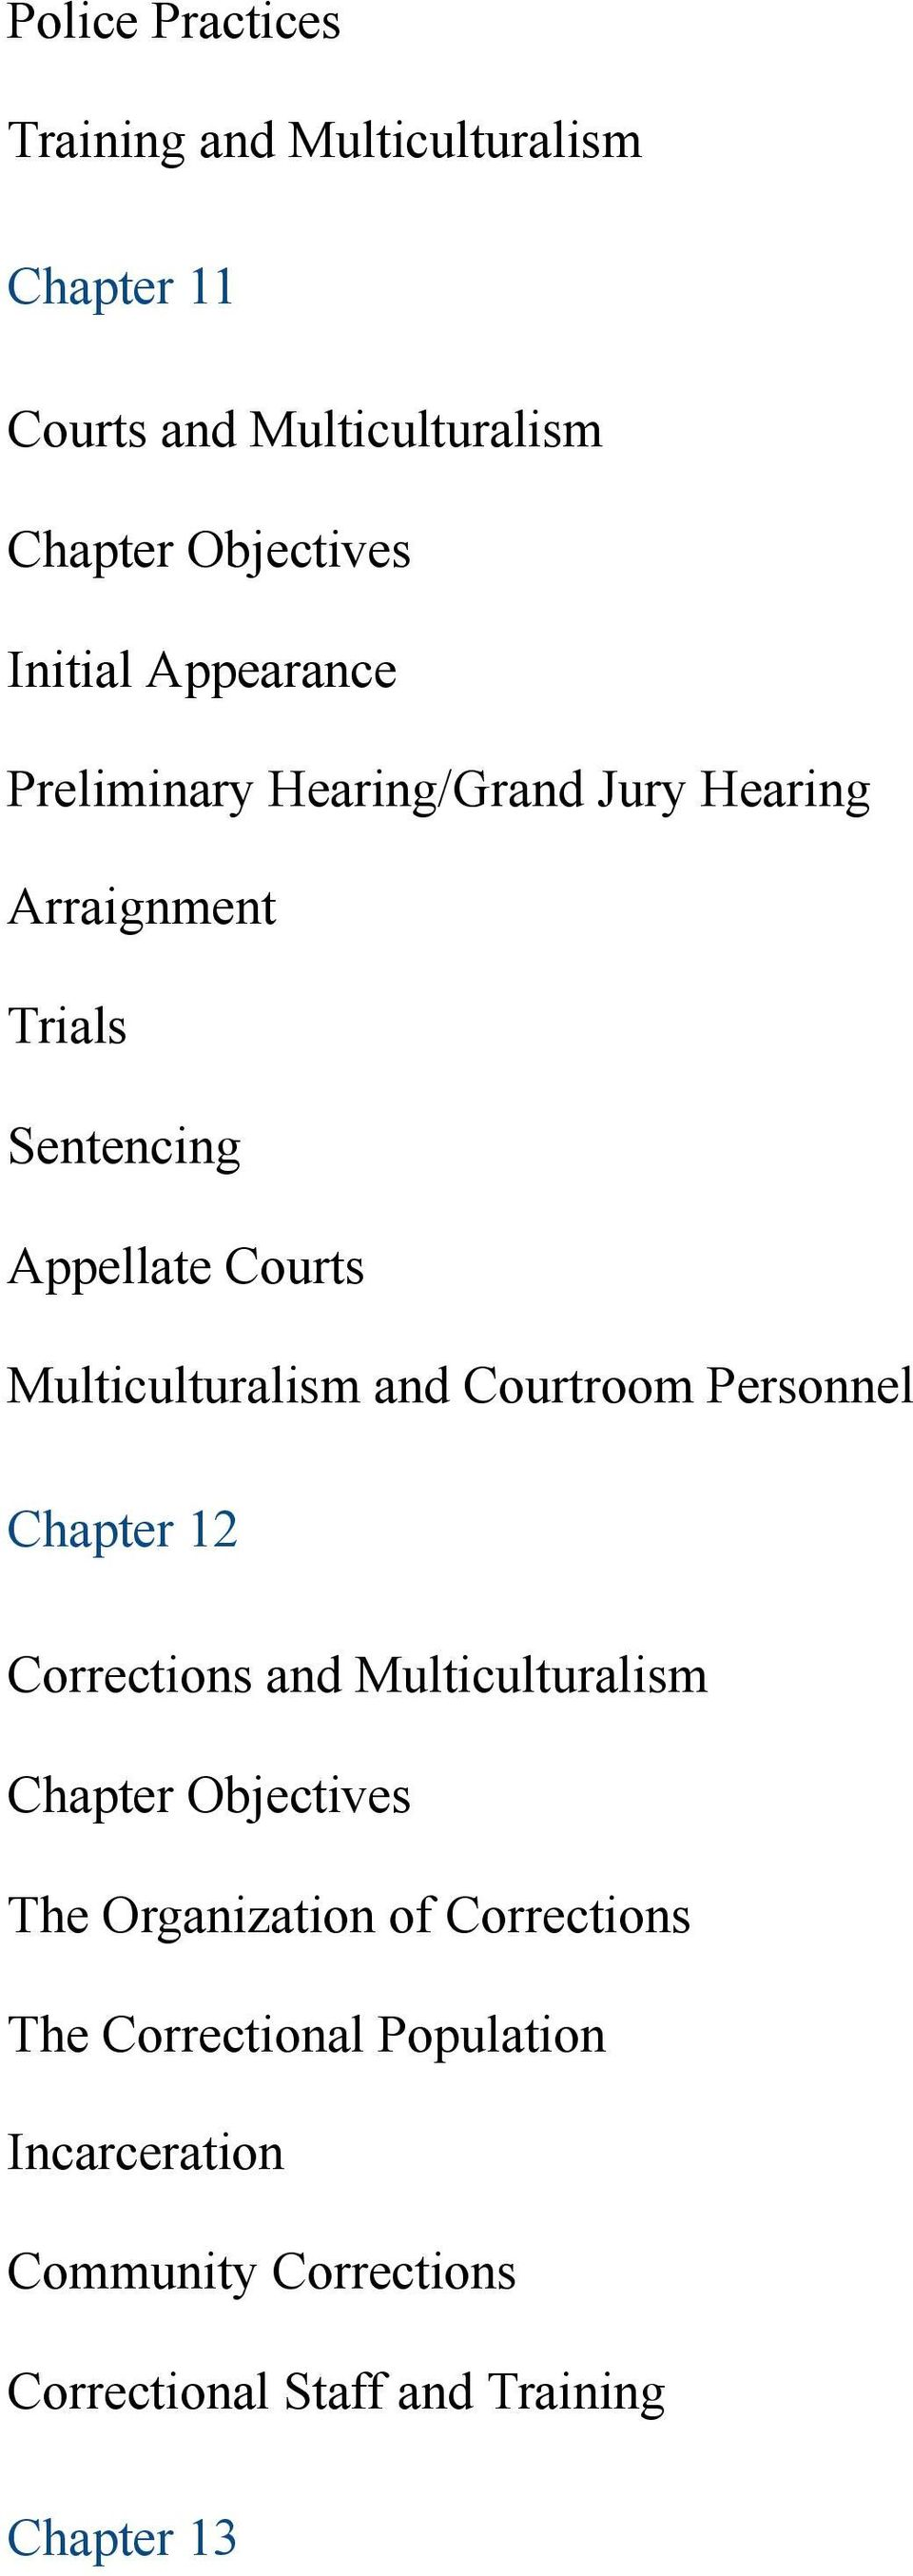 Multiculturalism and Courtroom Personnel Chapter 12 Corrections and Multiculturalism The Organization